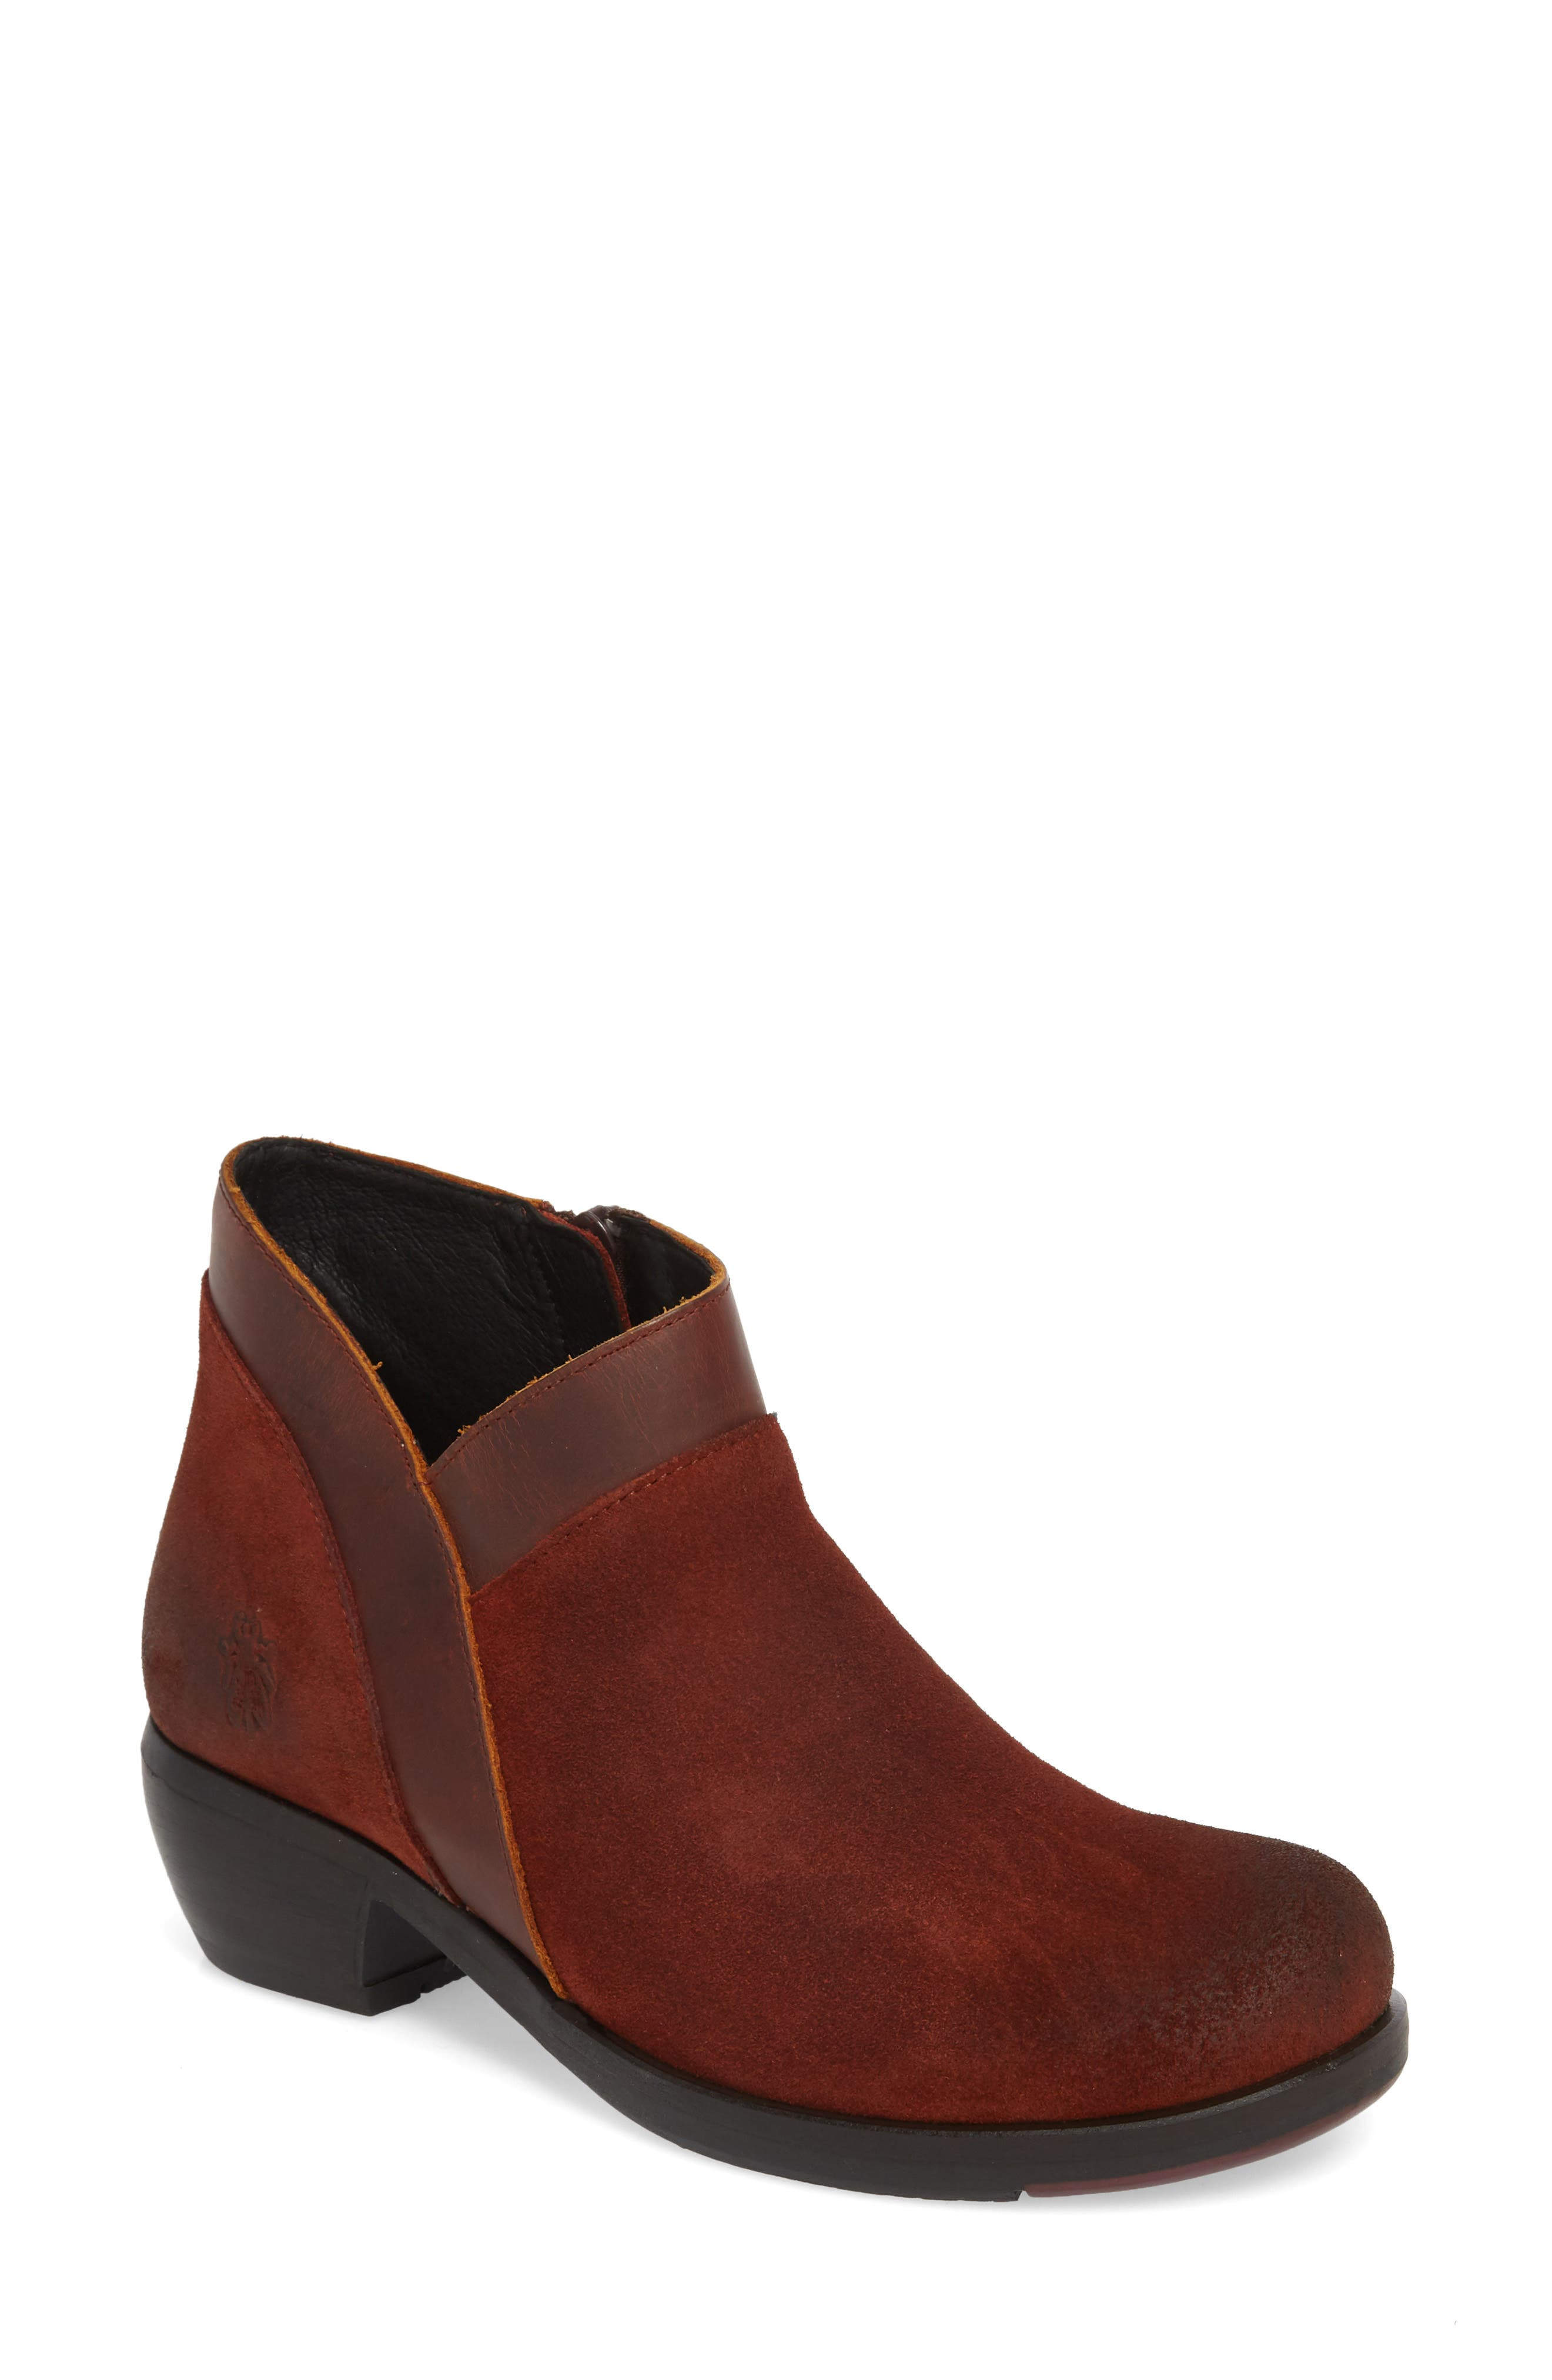 Fly London Meba Mixed Media Bootie - Red